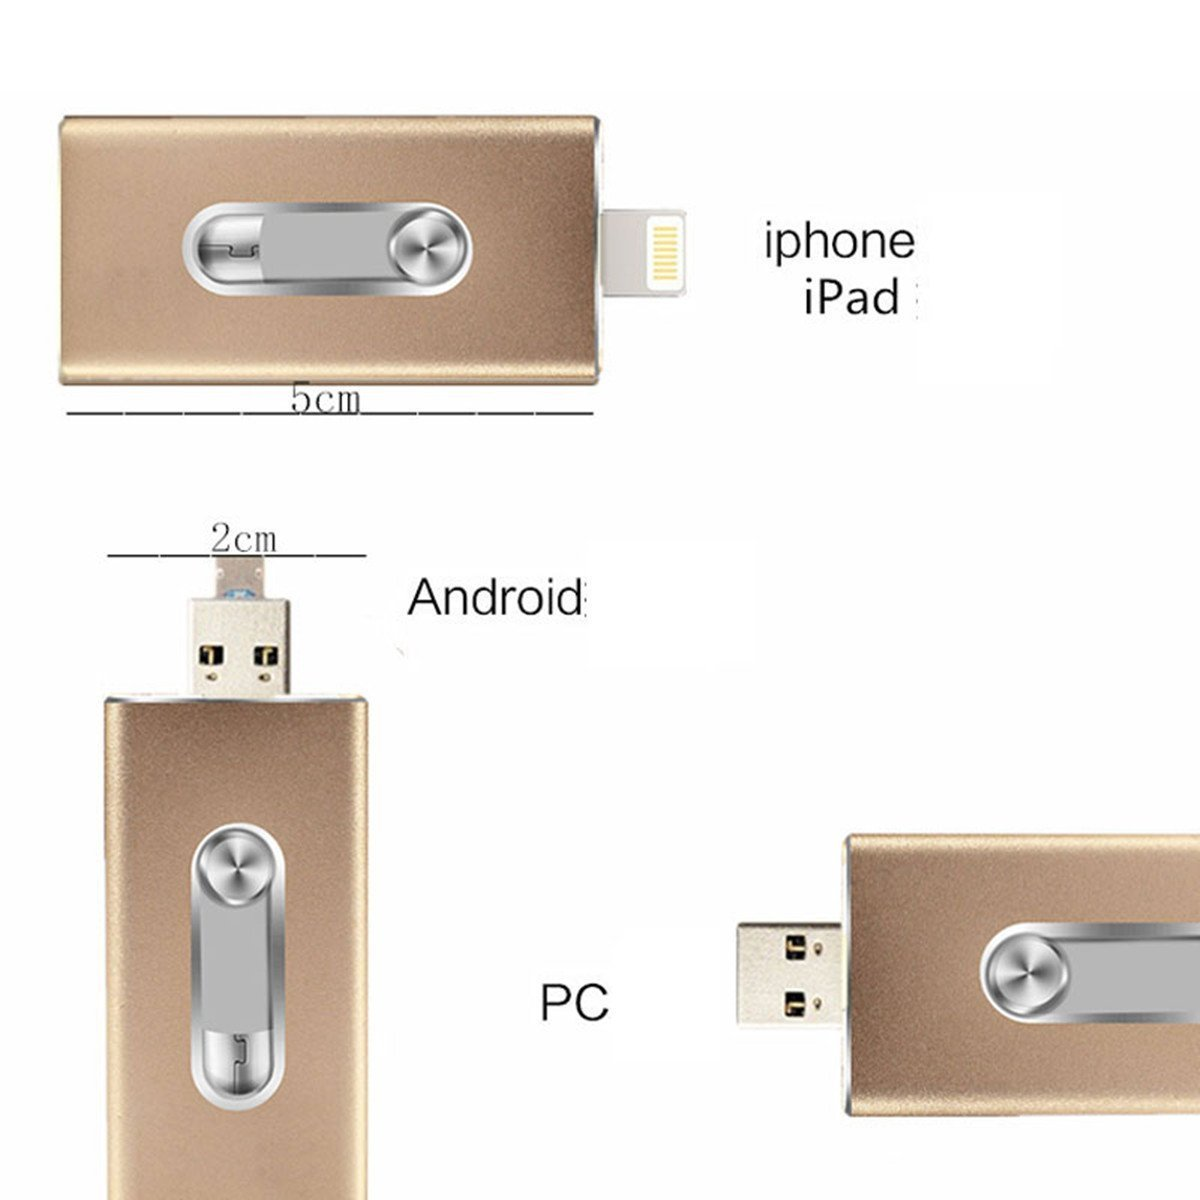 128GB iPhone USB Flash Drive, iOS Memory Stick, iPad External Storage Expansion for iOS Android PC Laptops (Gold)